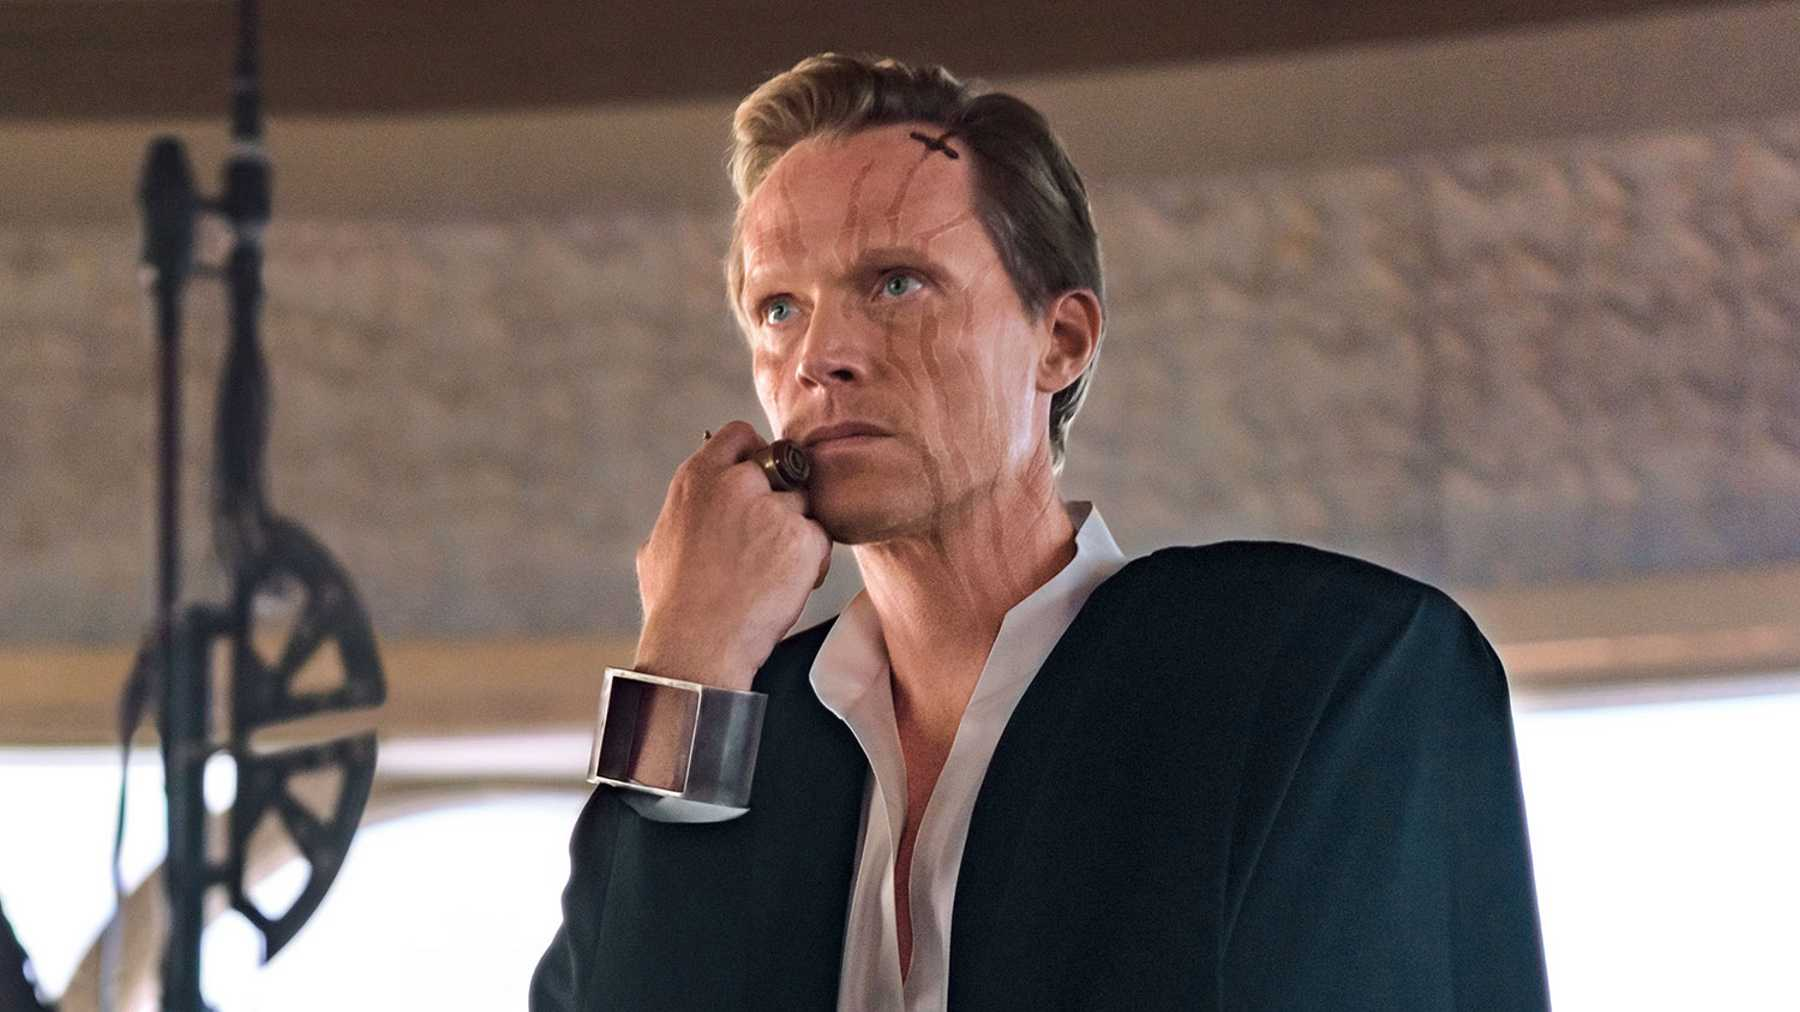 Paul Bettany American, British Actor